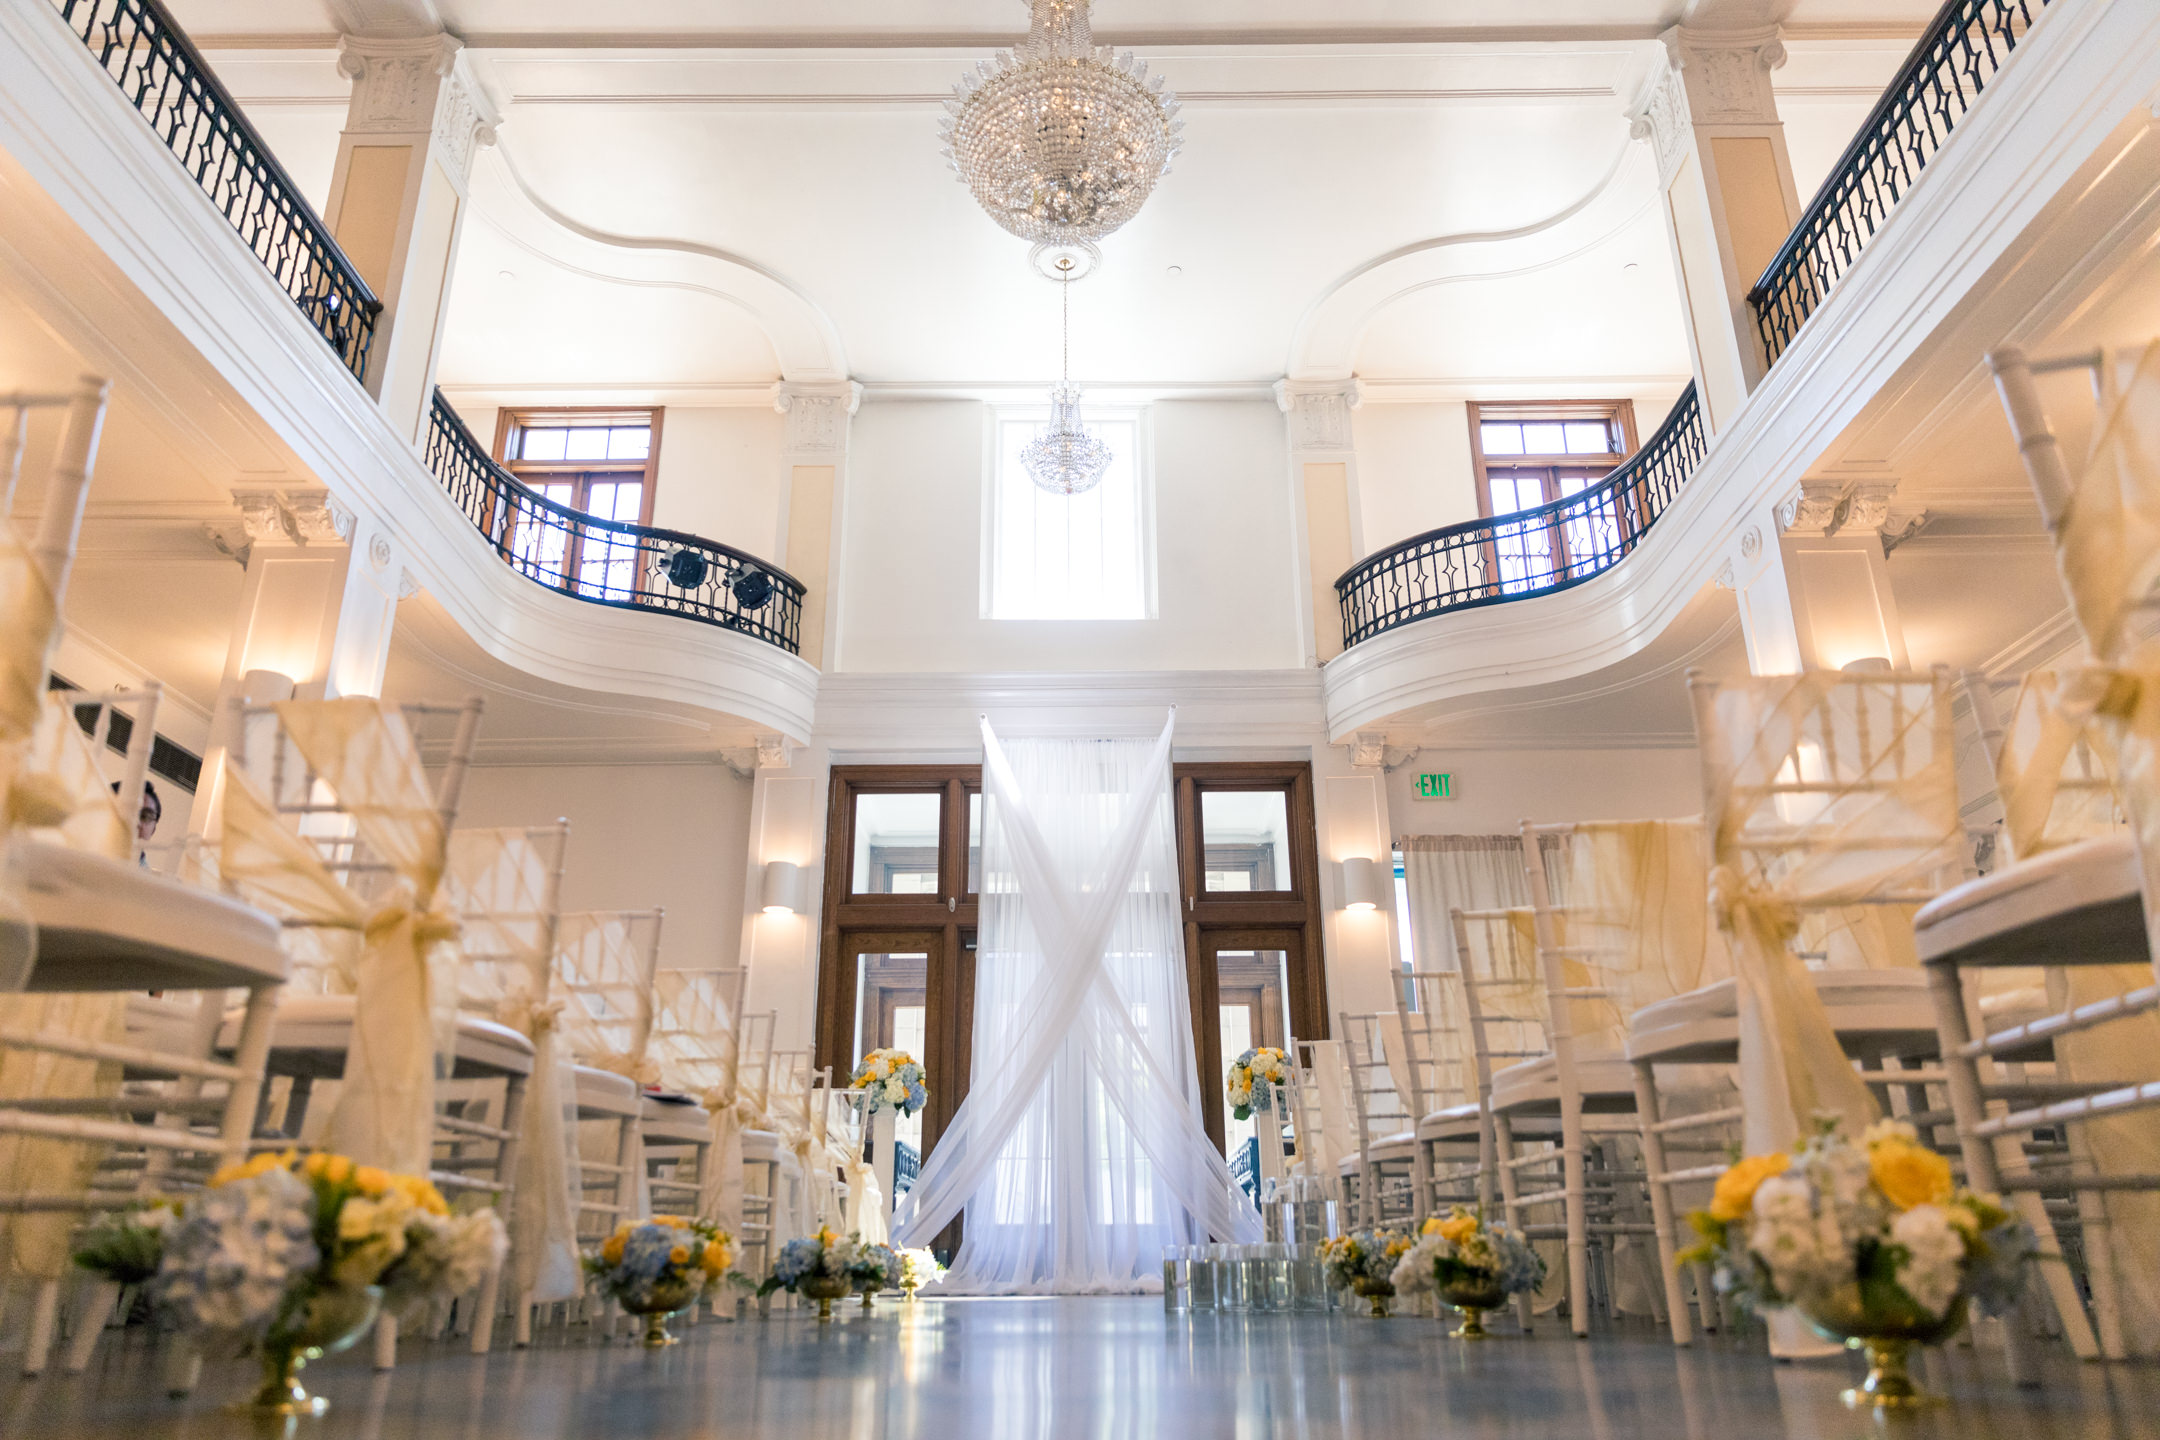 Wedding Ceremony Details at Monte Cristo Ballroom in Everett